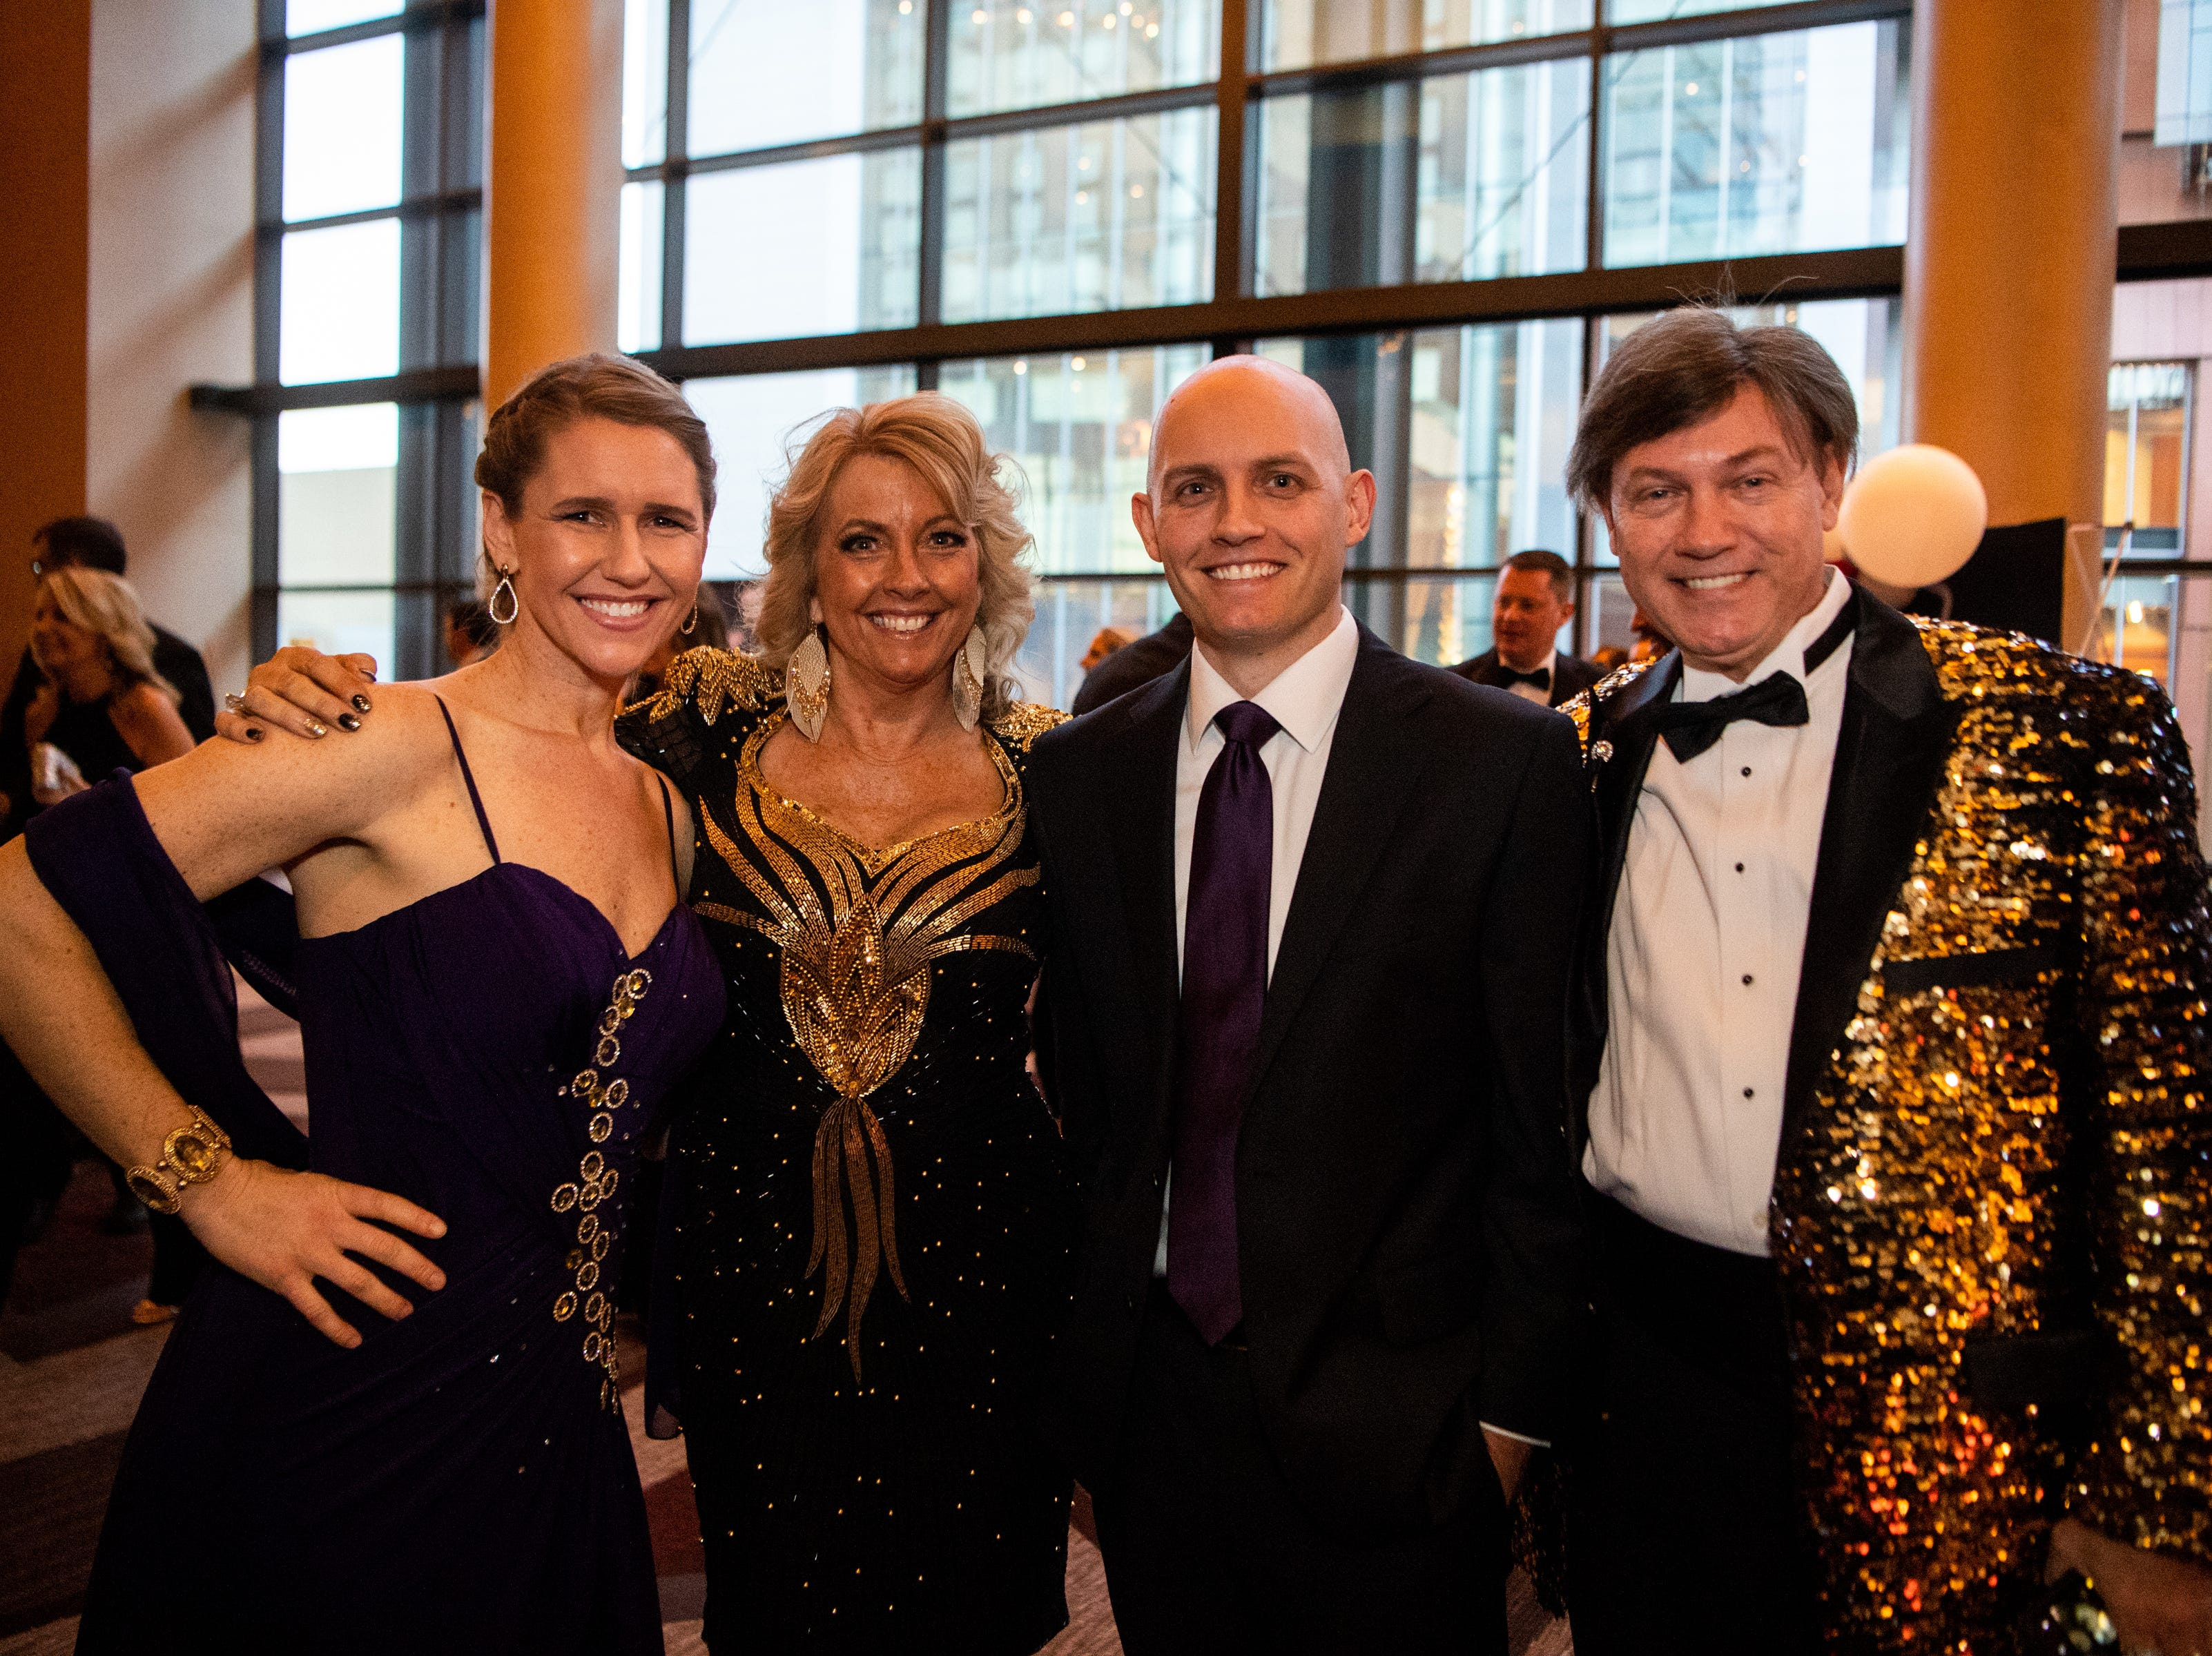 Adonia, Rhonda, Kevin Jr. and Kevin Kennedy (from left) pose for a photo during Austin Peay State University's annual Candlelight Ball at the Omni Nashville Hotel Saturday, March 16, 2019, in Nashville, Tenn.